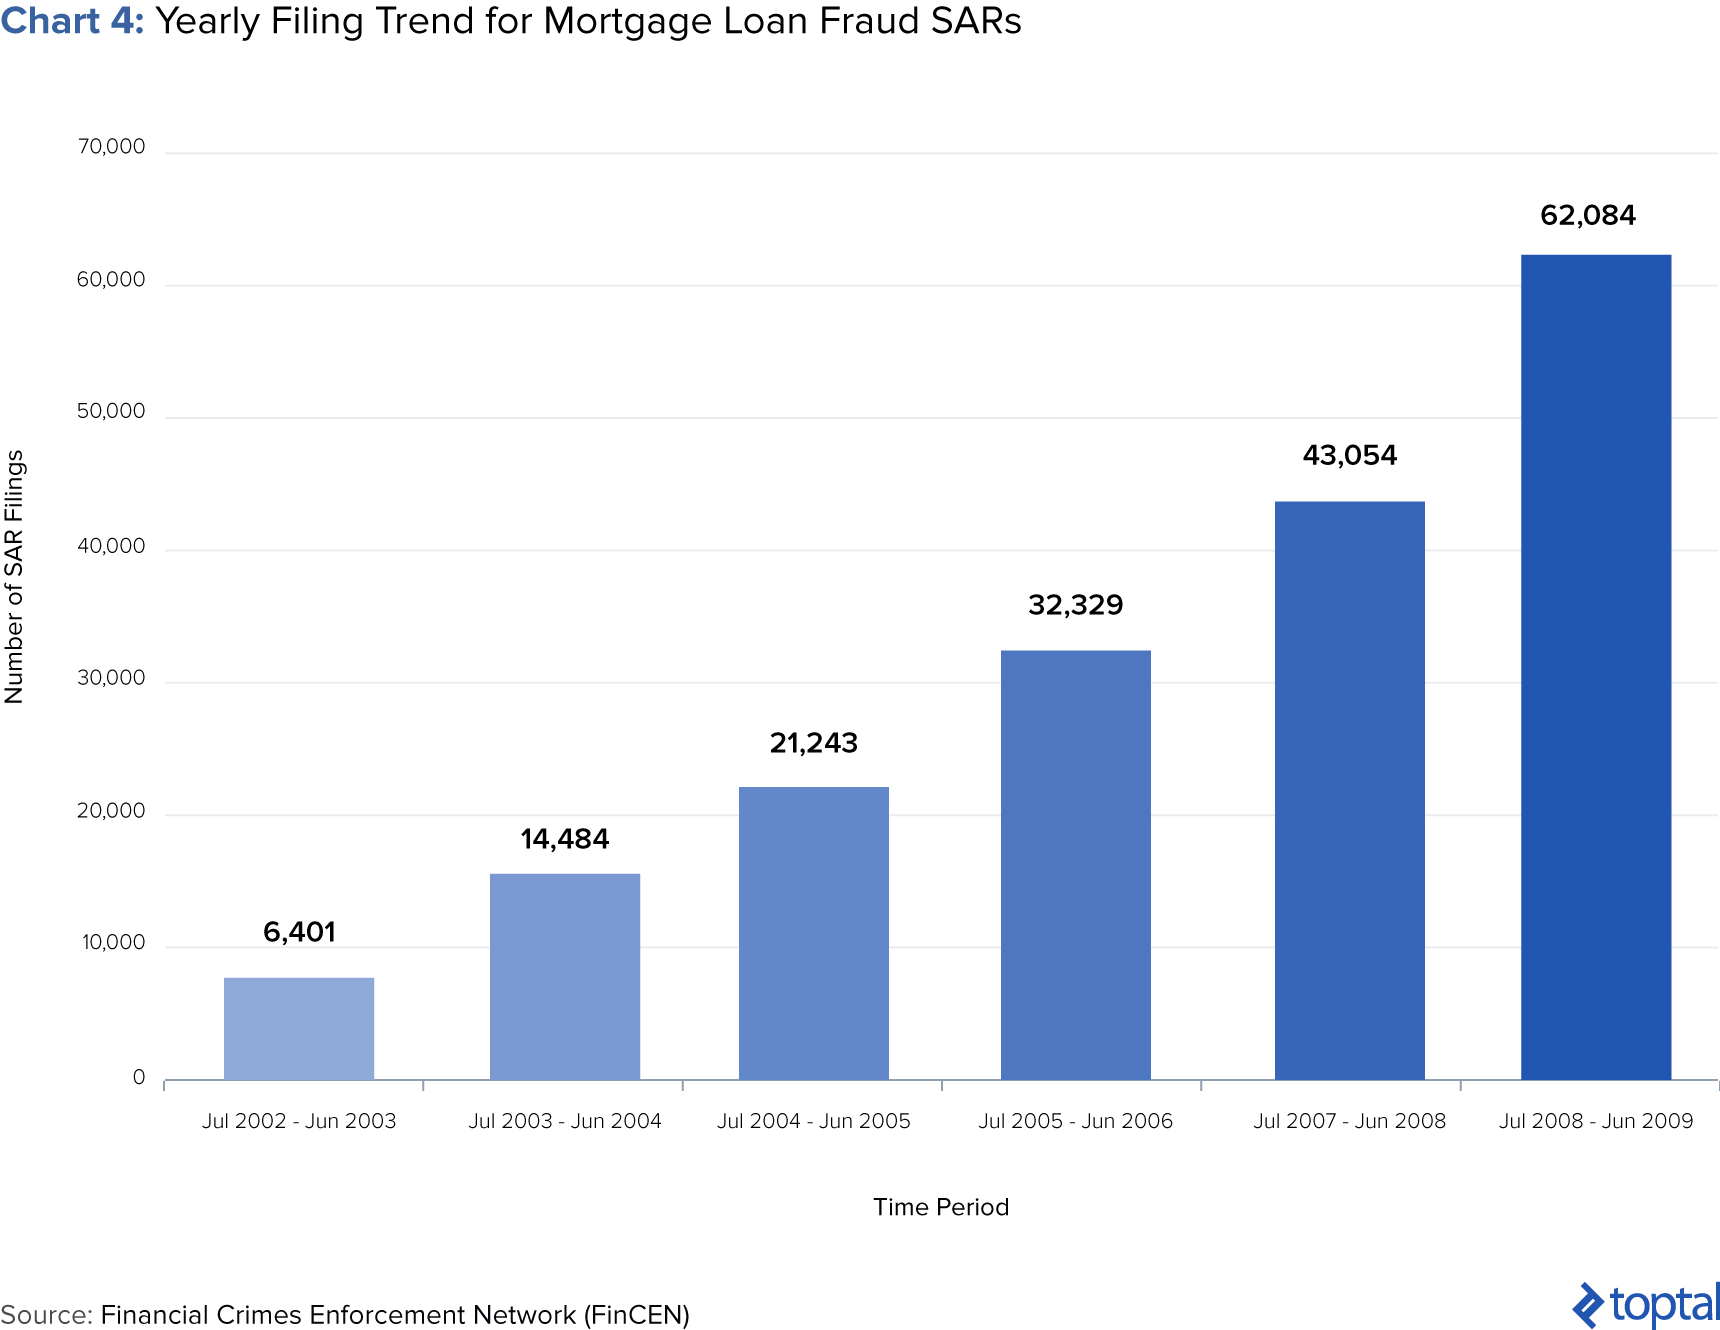 Chart 4: Yearly Filling Trend for Mortgage Loan Fraud SARs